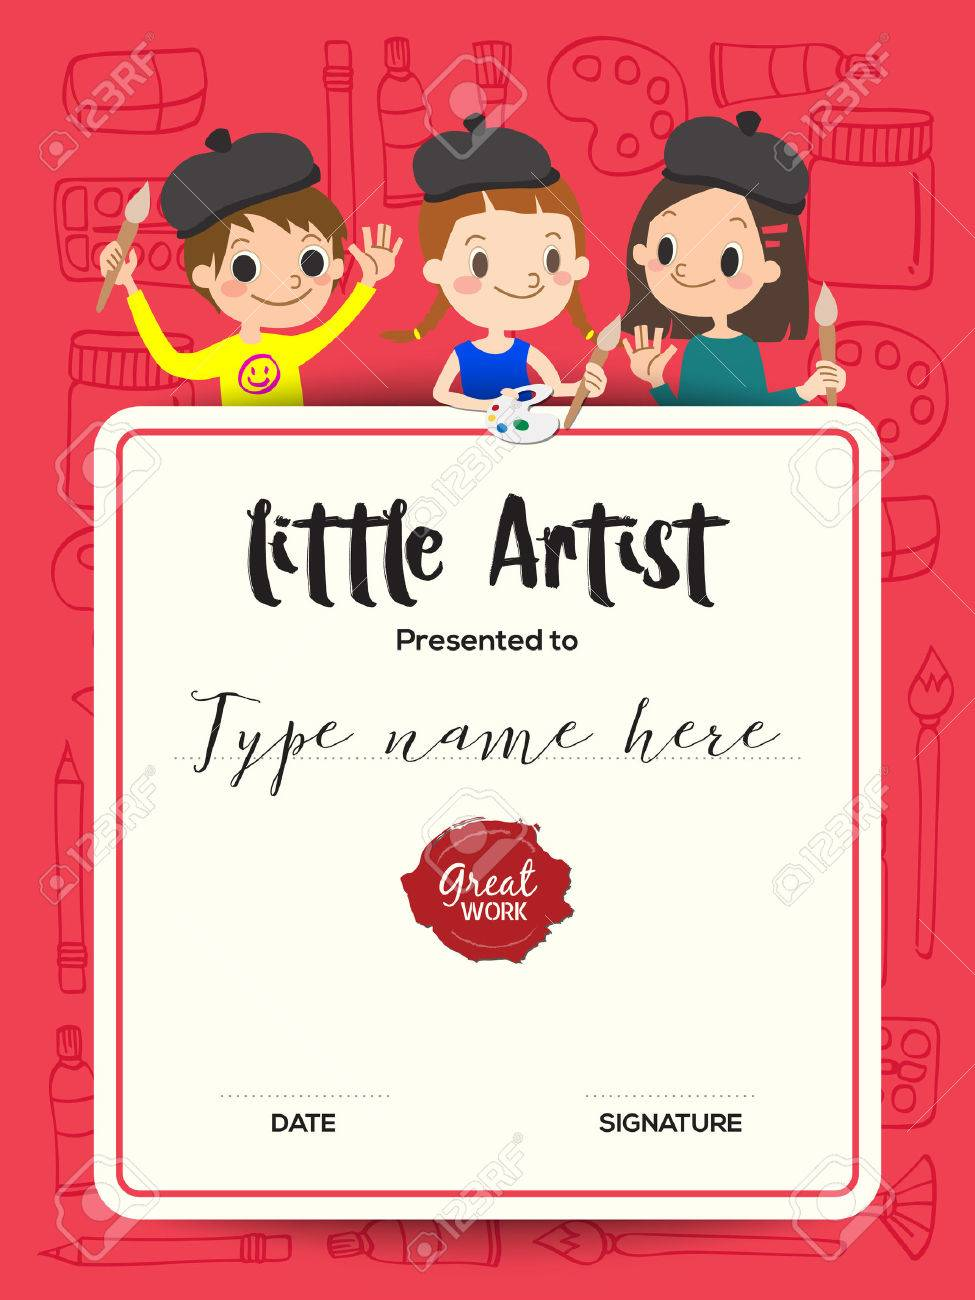 Child certificate template images templates example free download little artist kids diploma child painting course certificate little artist kids diploma child painting course certificate xflitez Images